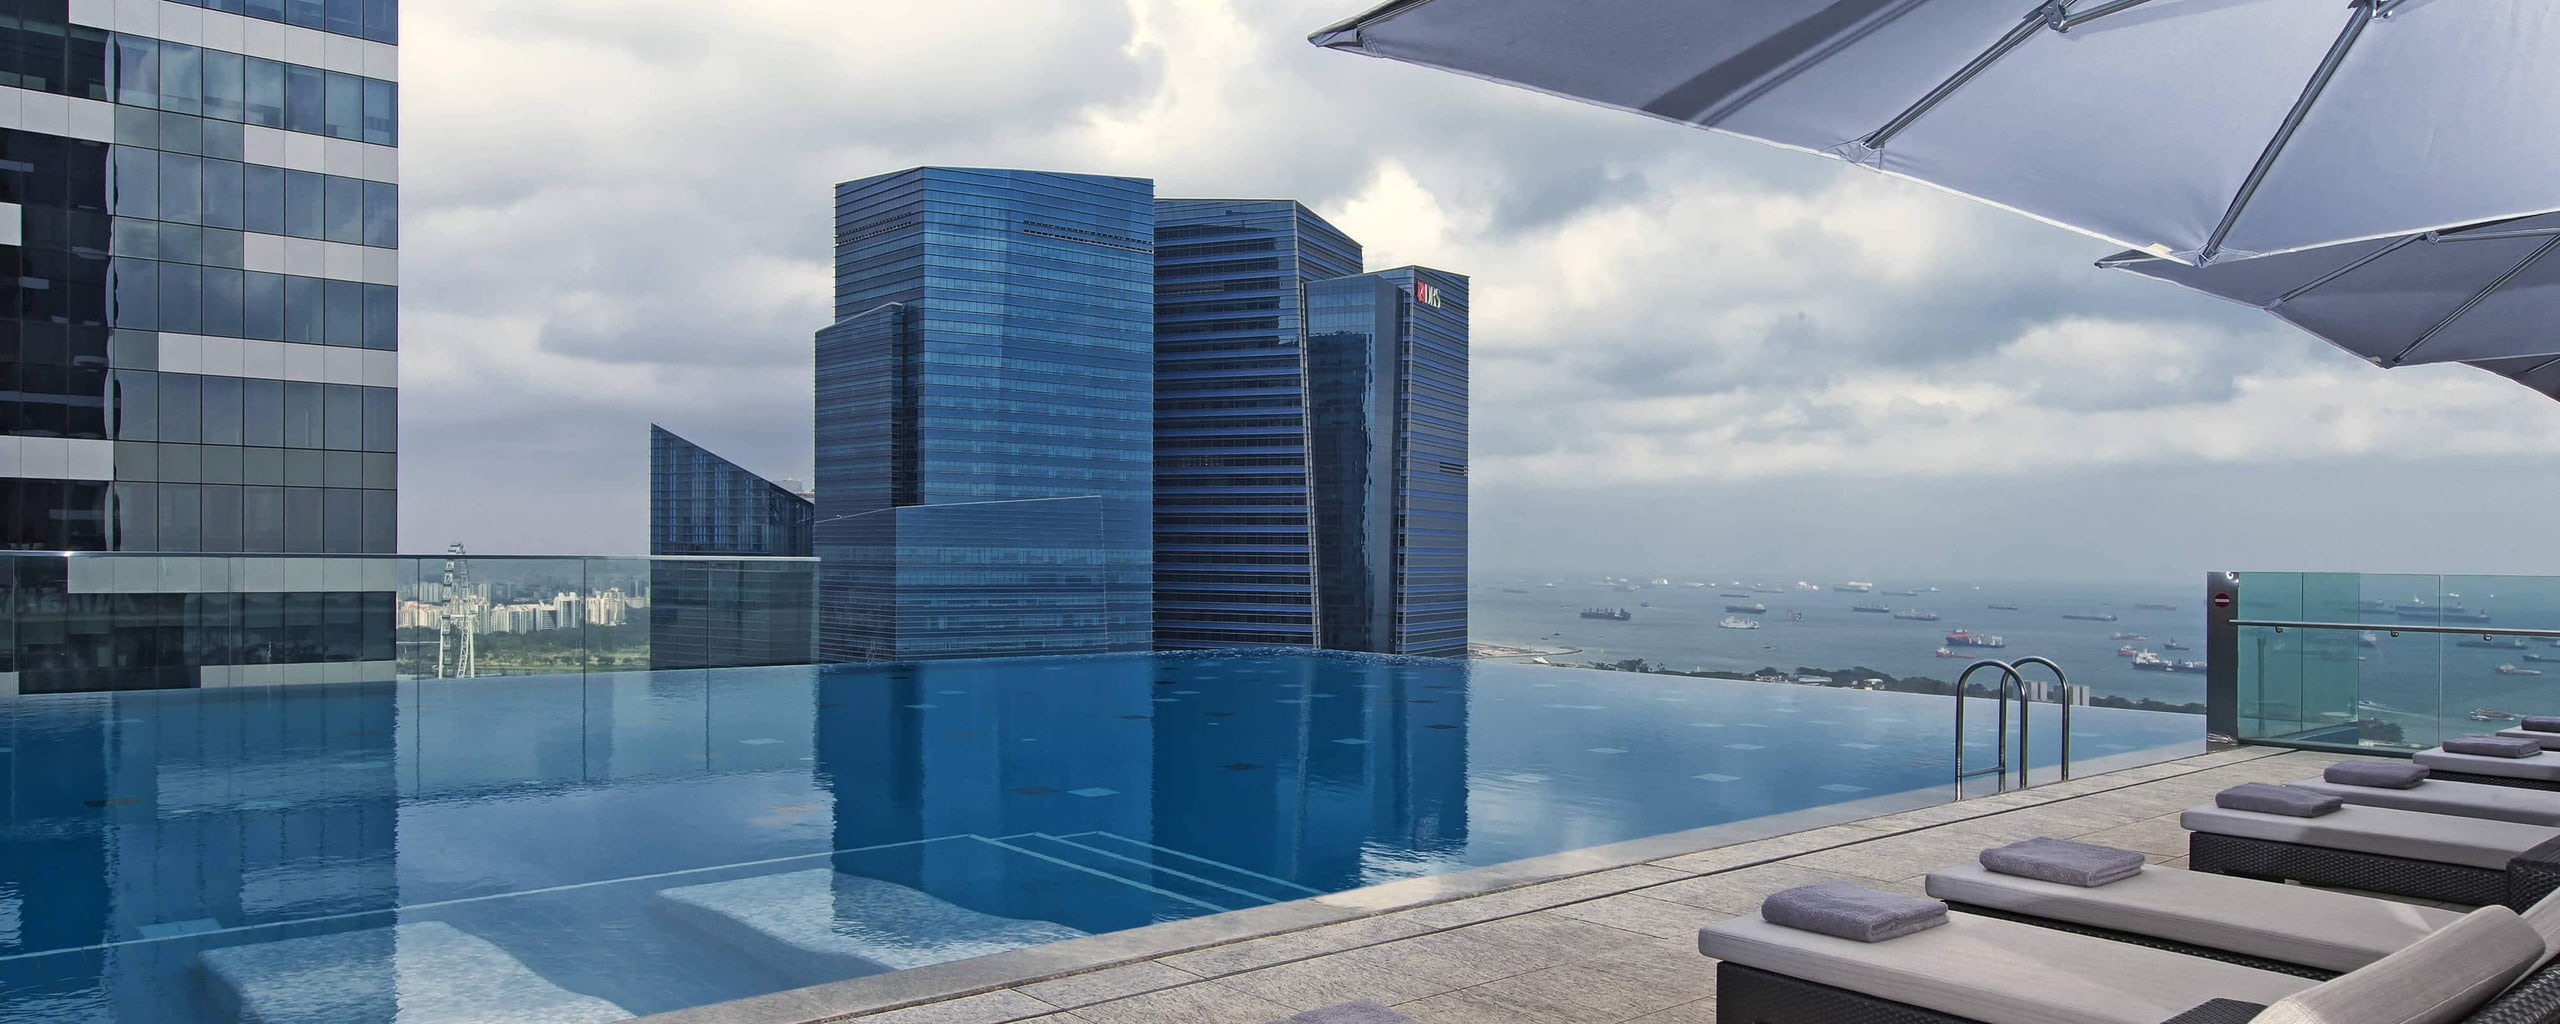 The Westin Singapore rooftop pool